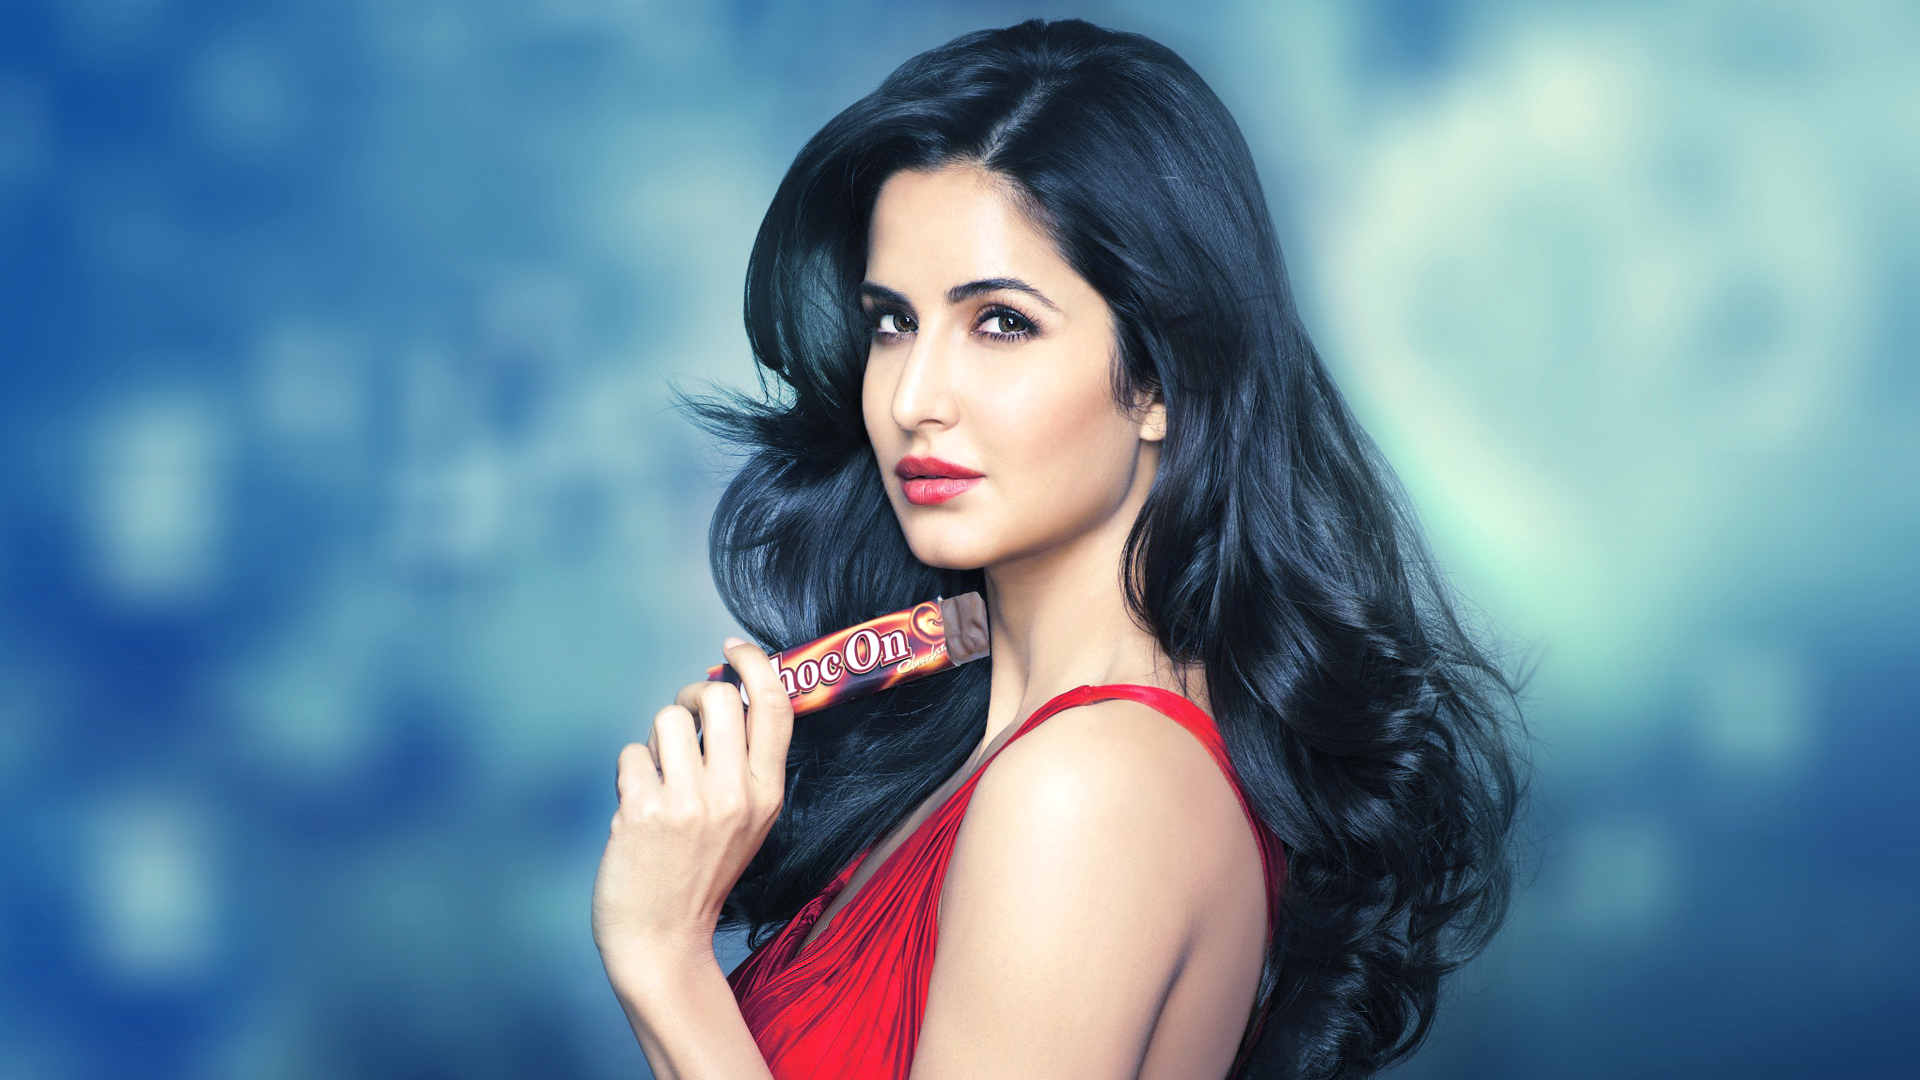 katrina_kaif_choc_on-HD-wallpaper